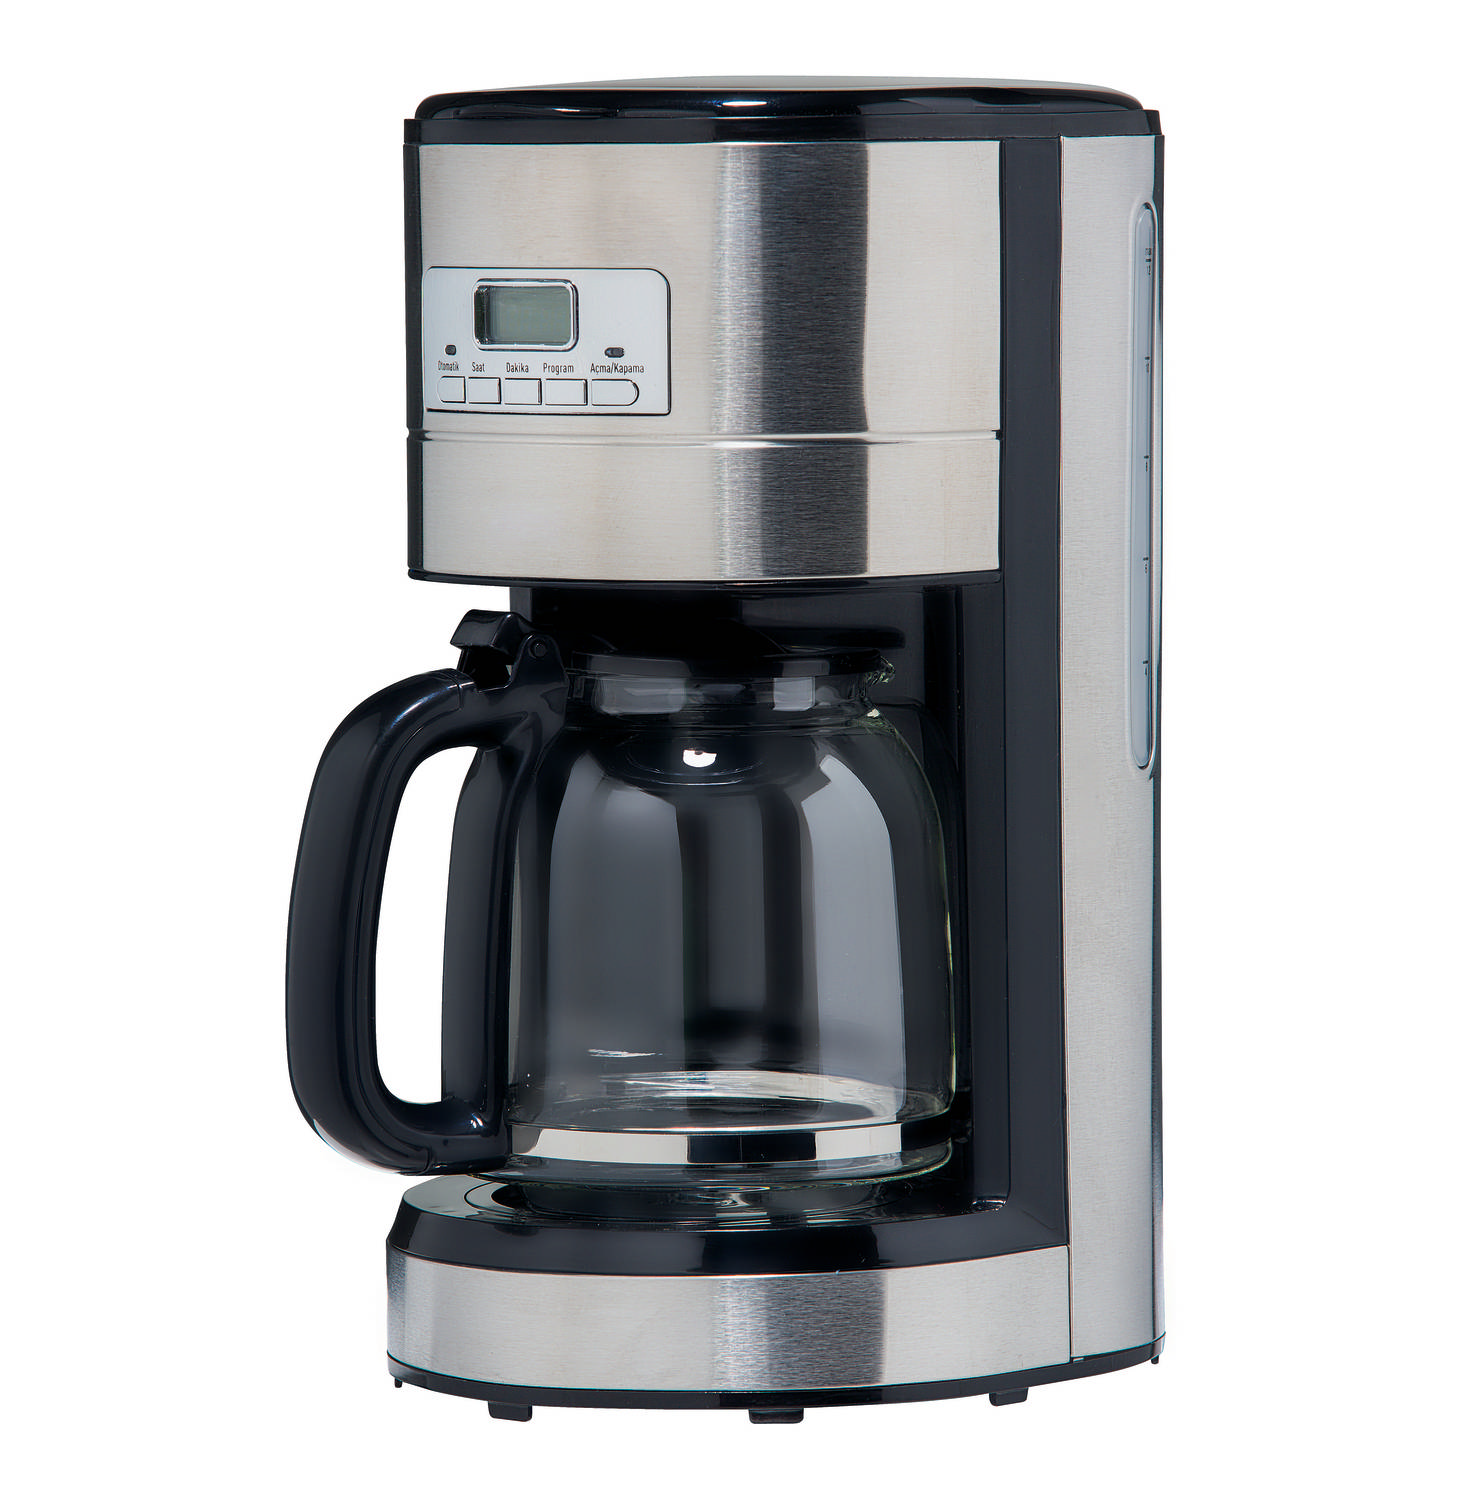 Filter Coffee Machine Prices Costs And Features